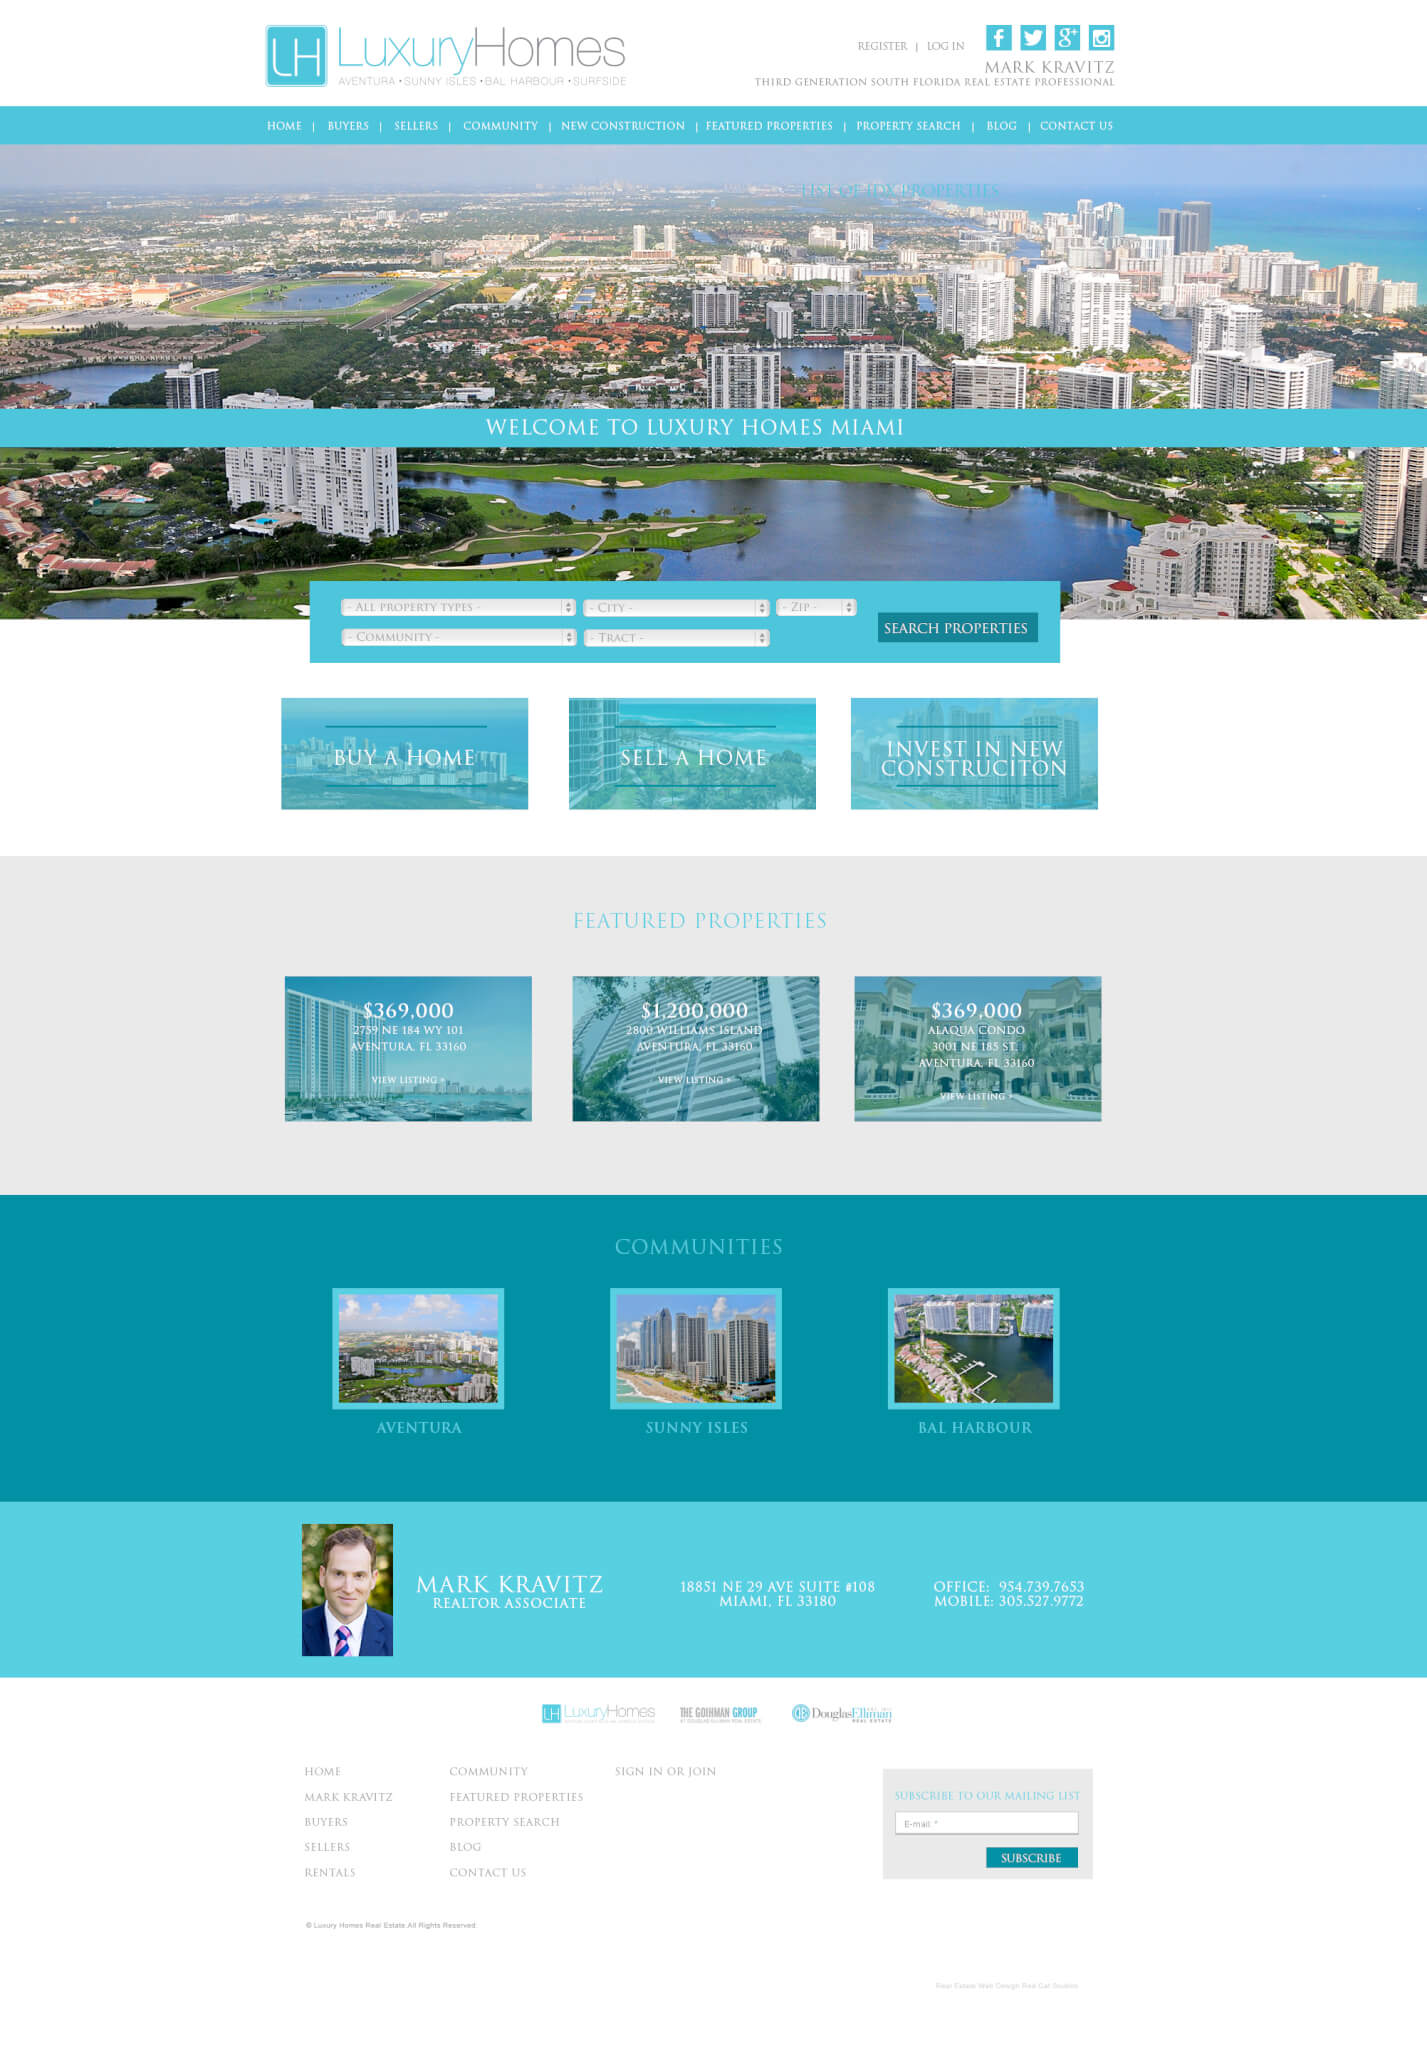 Real Estate IDX web site design Miami Mark Kravitz Realto